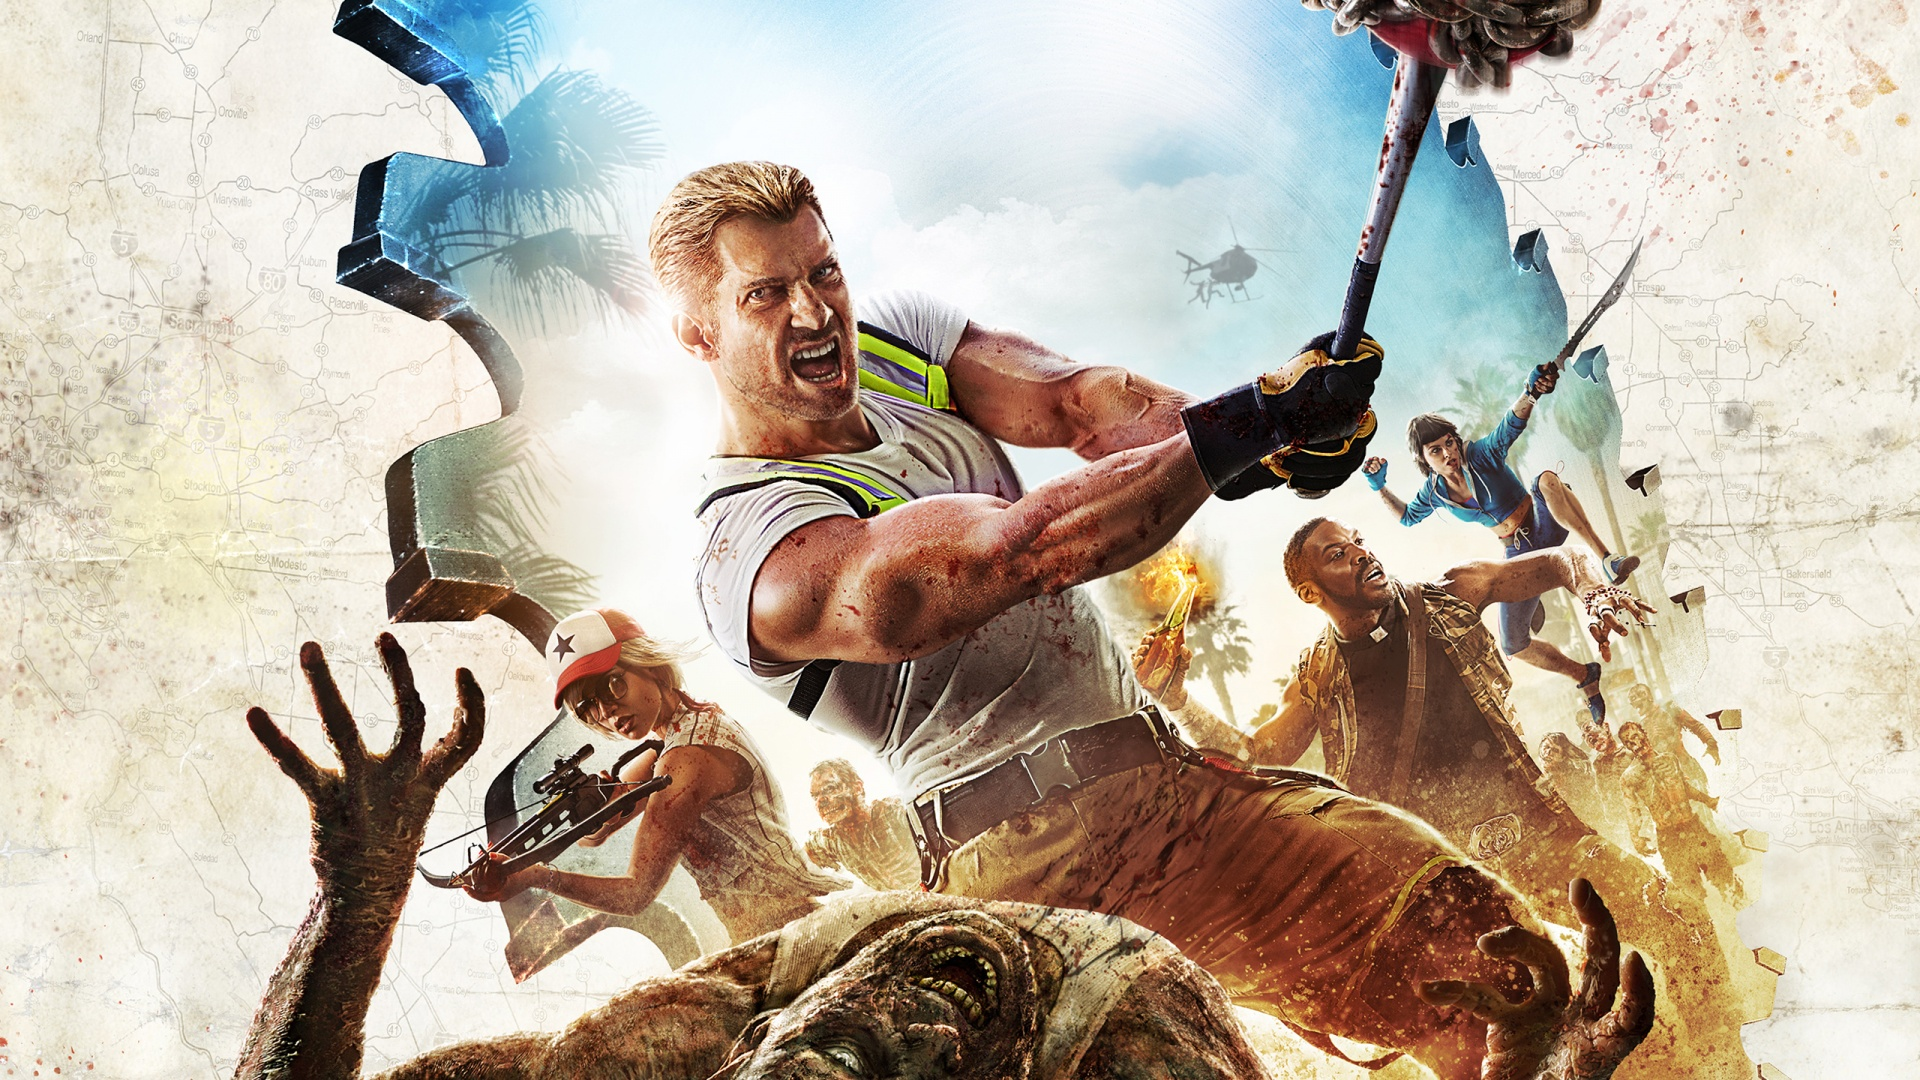 Dead Island 2 Game Wallpapers | HD Wallpapers